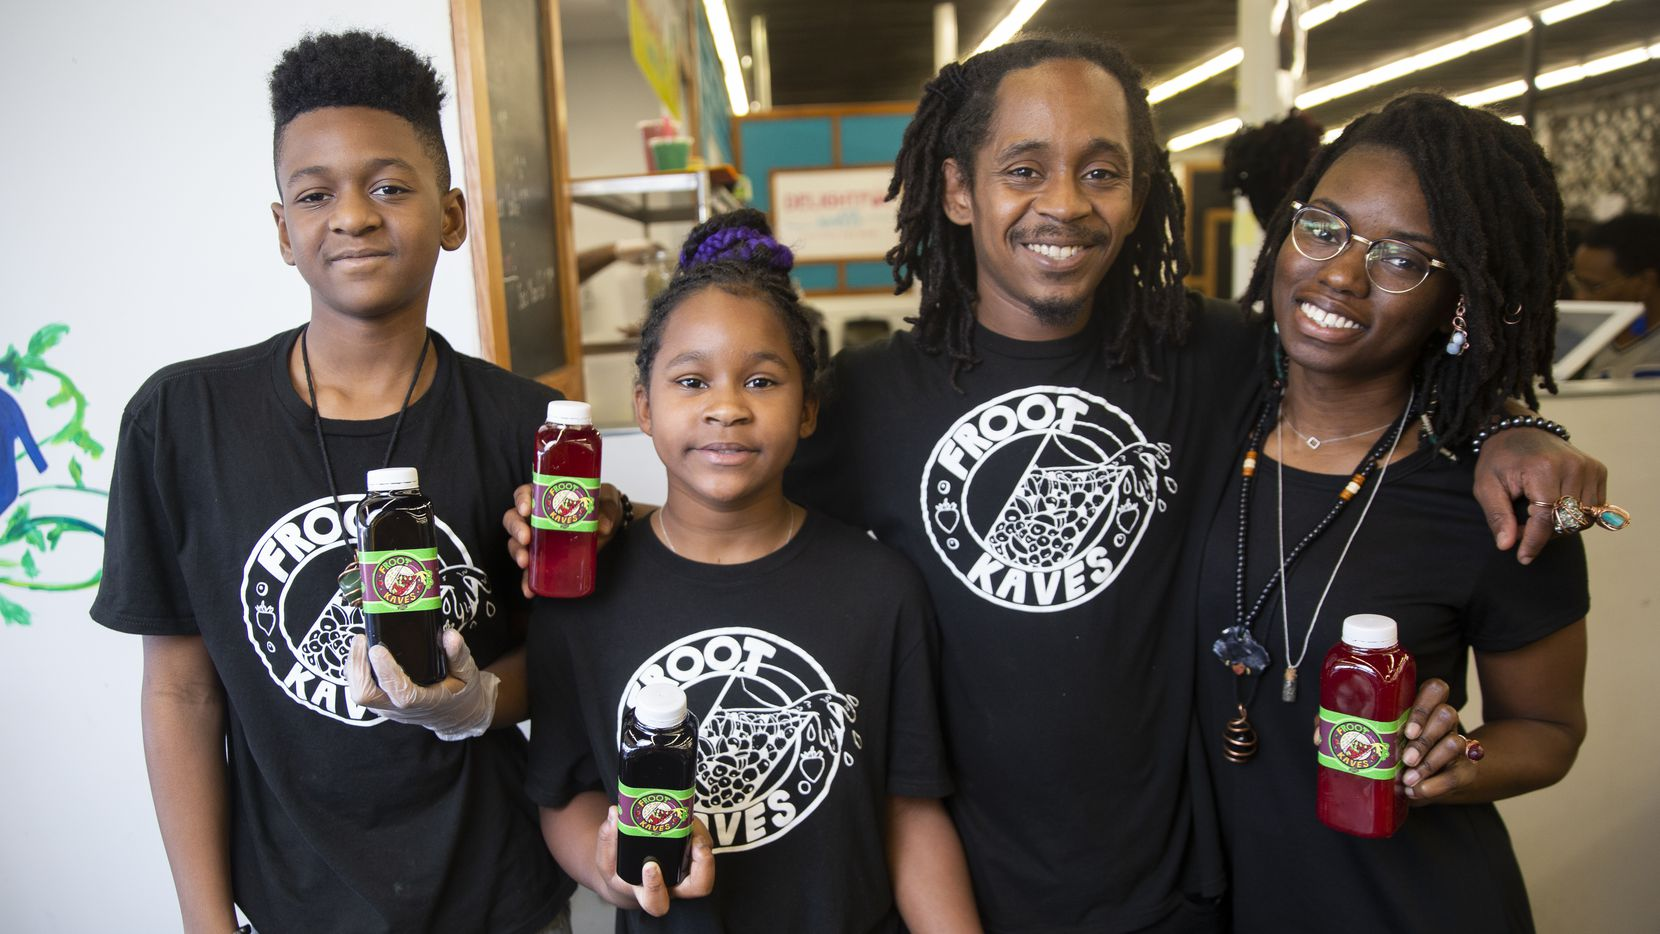 Marquise II, Kar'mel, Marquise McBride and Sarina Daniels of Froot Kaves have sold their lemonade at Grow DeSoto Market Place.